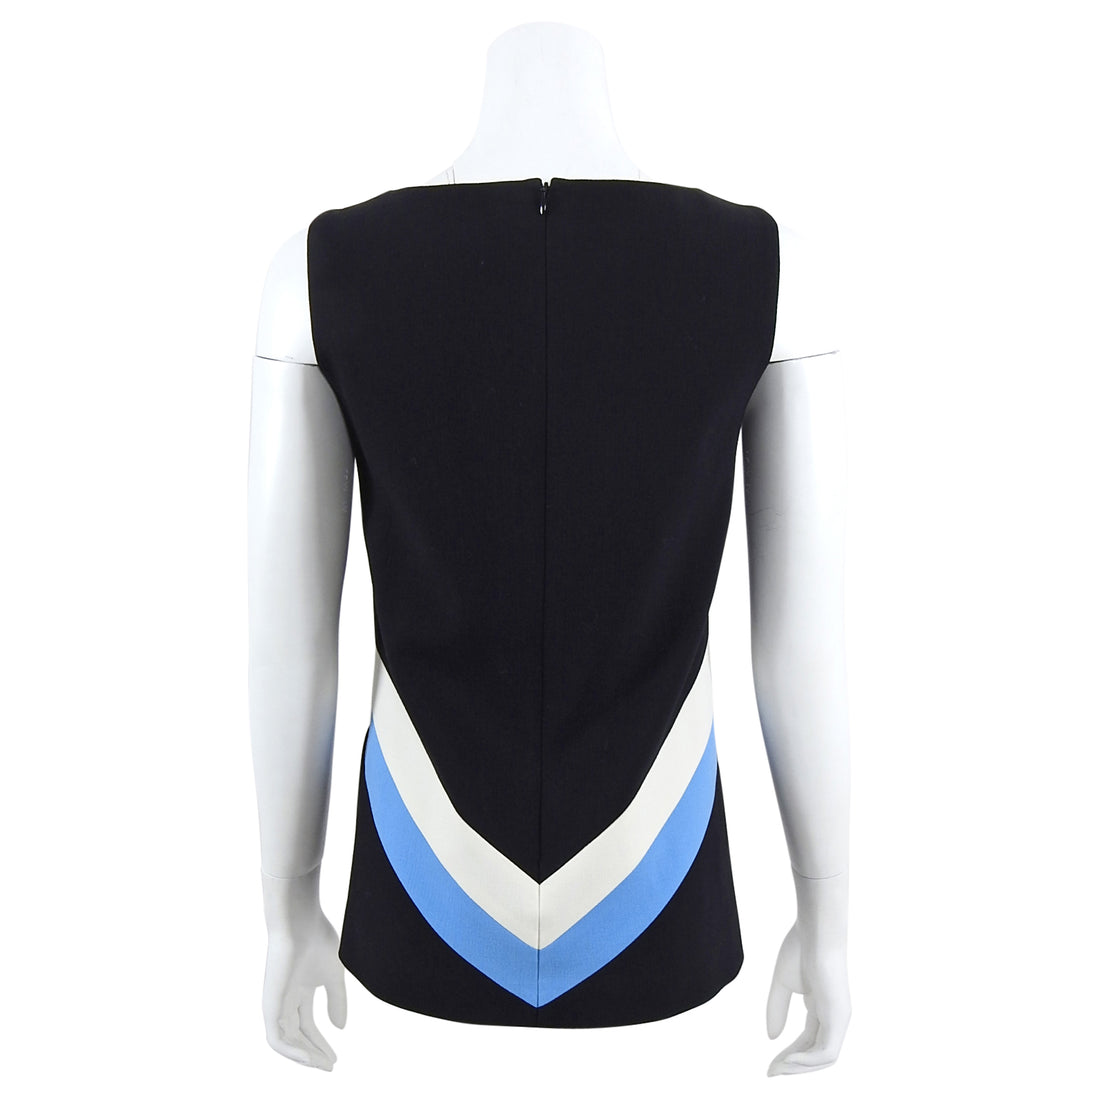 Emilio Pucci Black and Blue Geometric Sleeveless Top - IT40 / USA 4